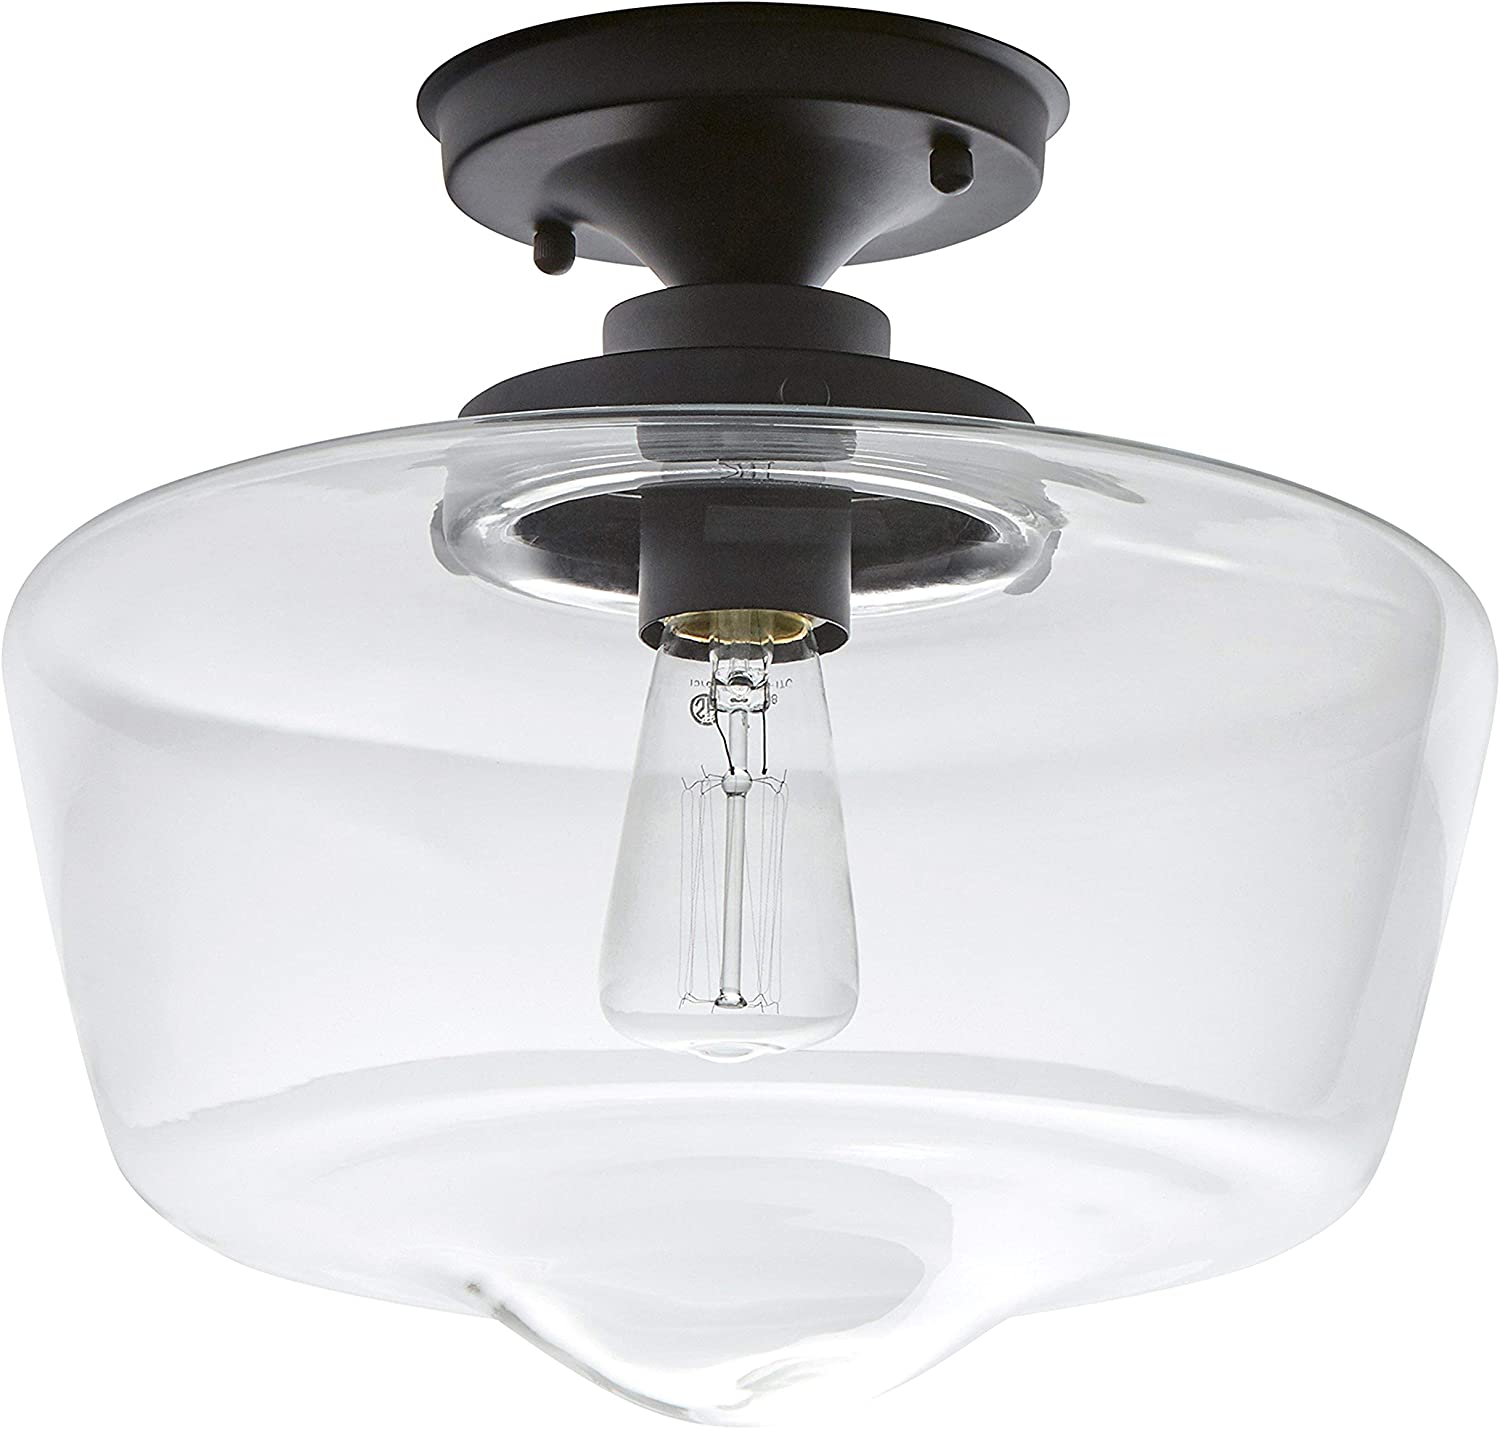 Stone & Beam Schoolhouse Semi-Flush Mount Ceiling Light, 10.5 H, With Bulb, Matte Black with Glass Shade